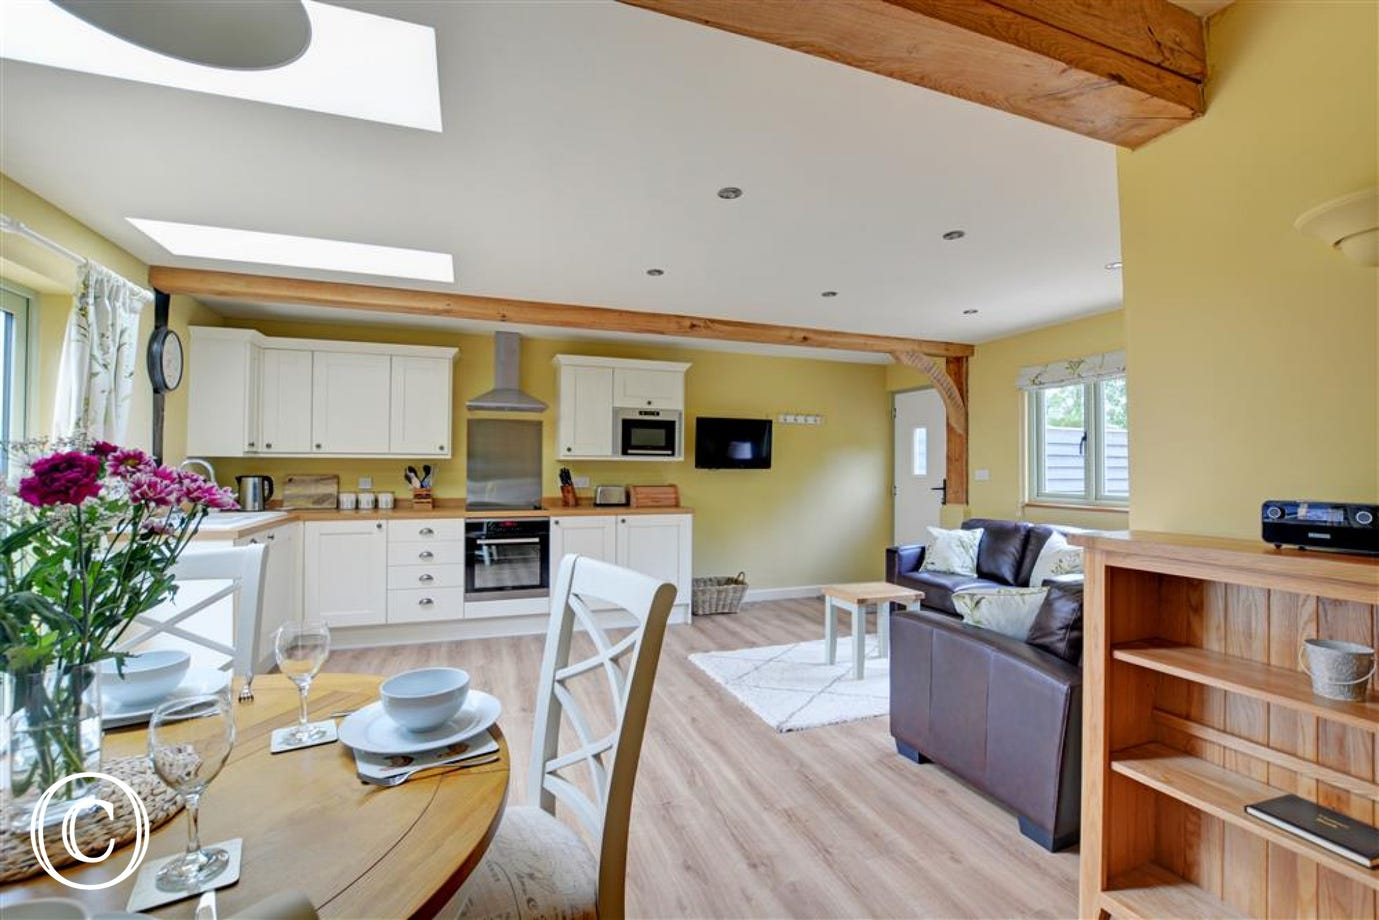 Open plan room with kitchen, dining and seating areas